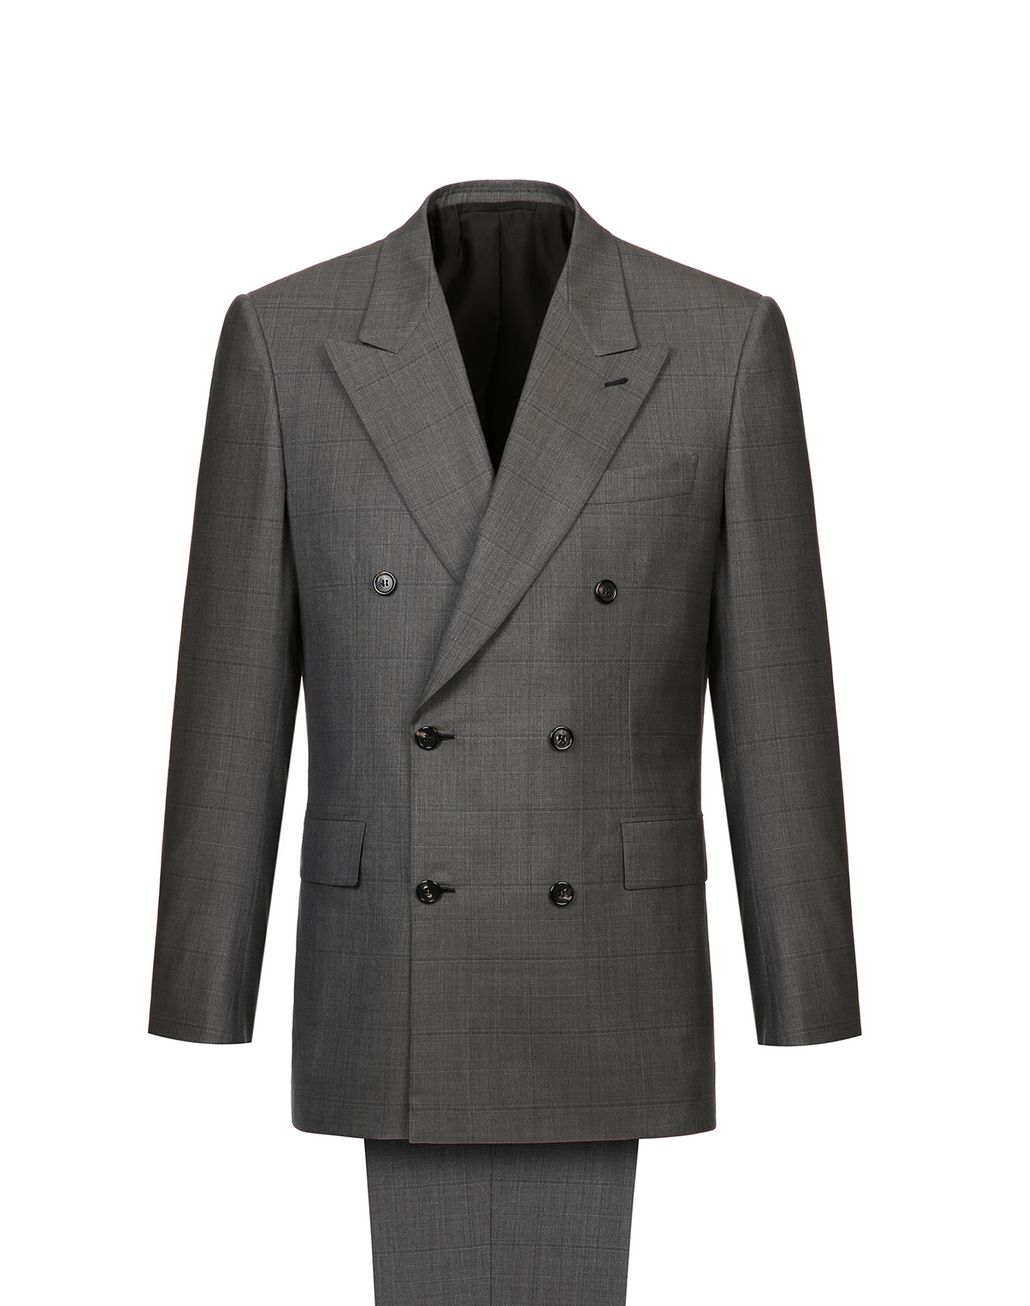 BRIONI Grey Parioli Double Breasted Suit   Suits & Jackets Man f